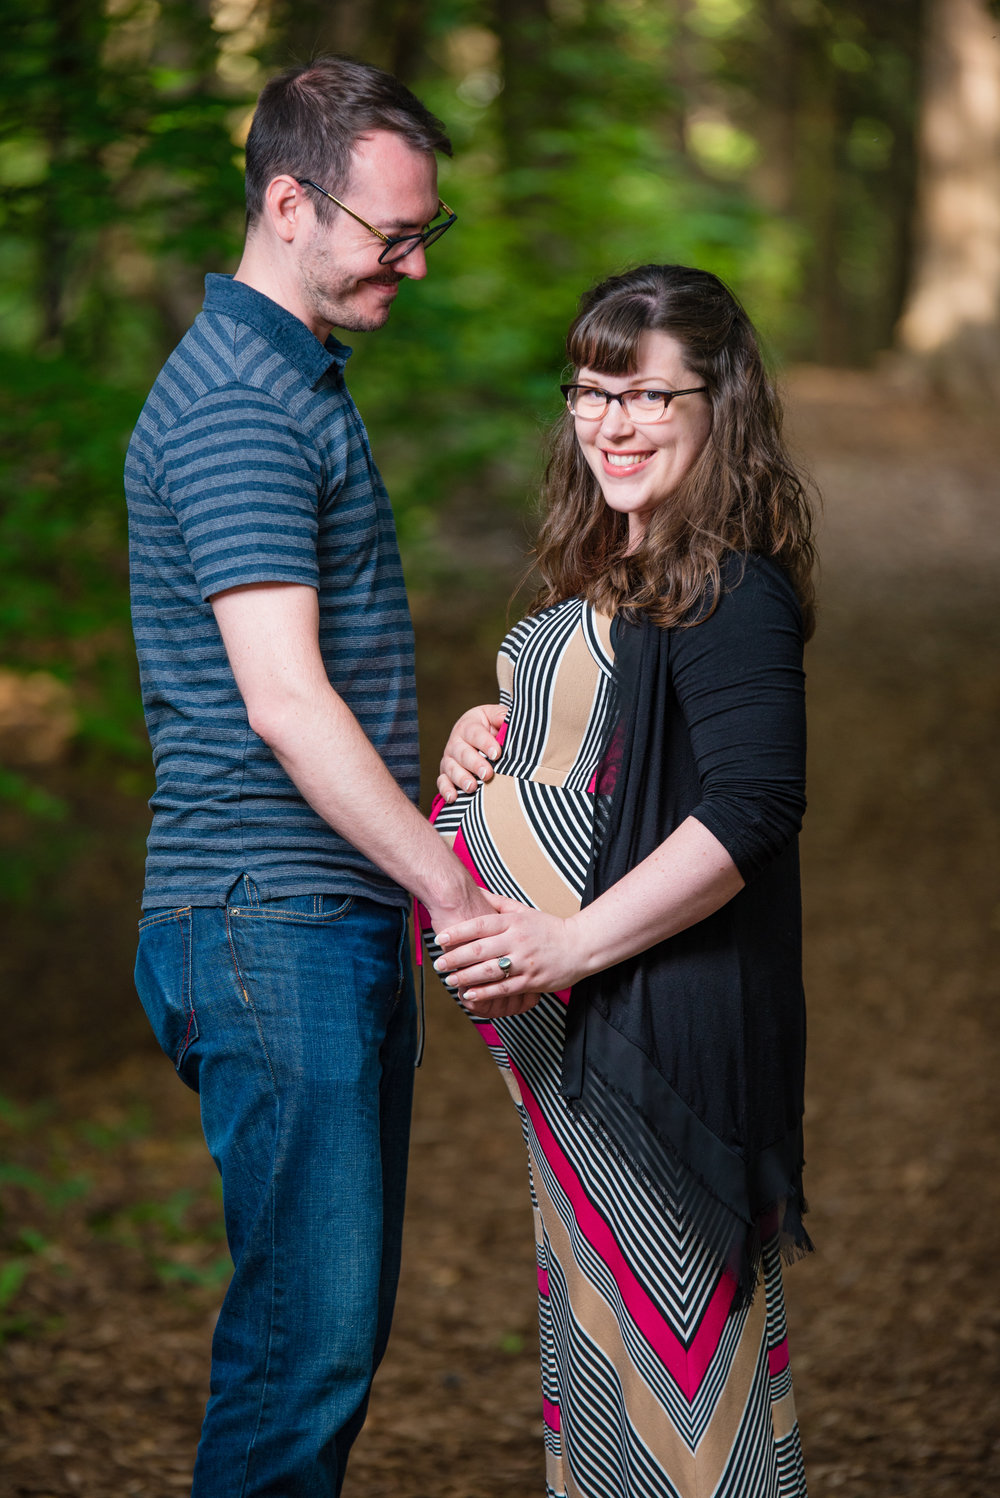 2018_June_23-06_23_2018_Ben_Anna_Maternity-48878-Edit.jpg